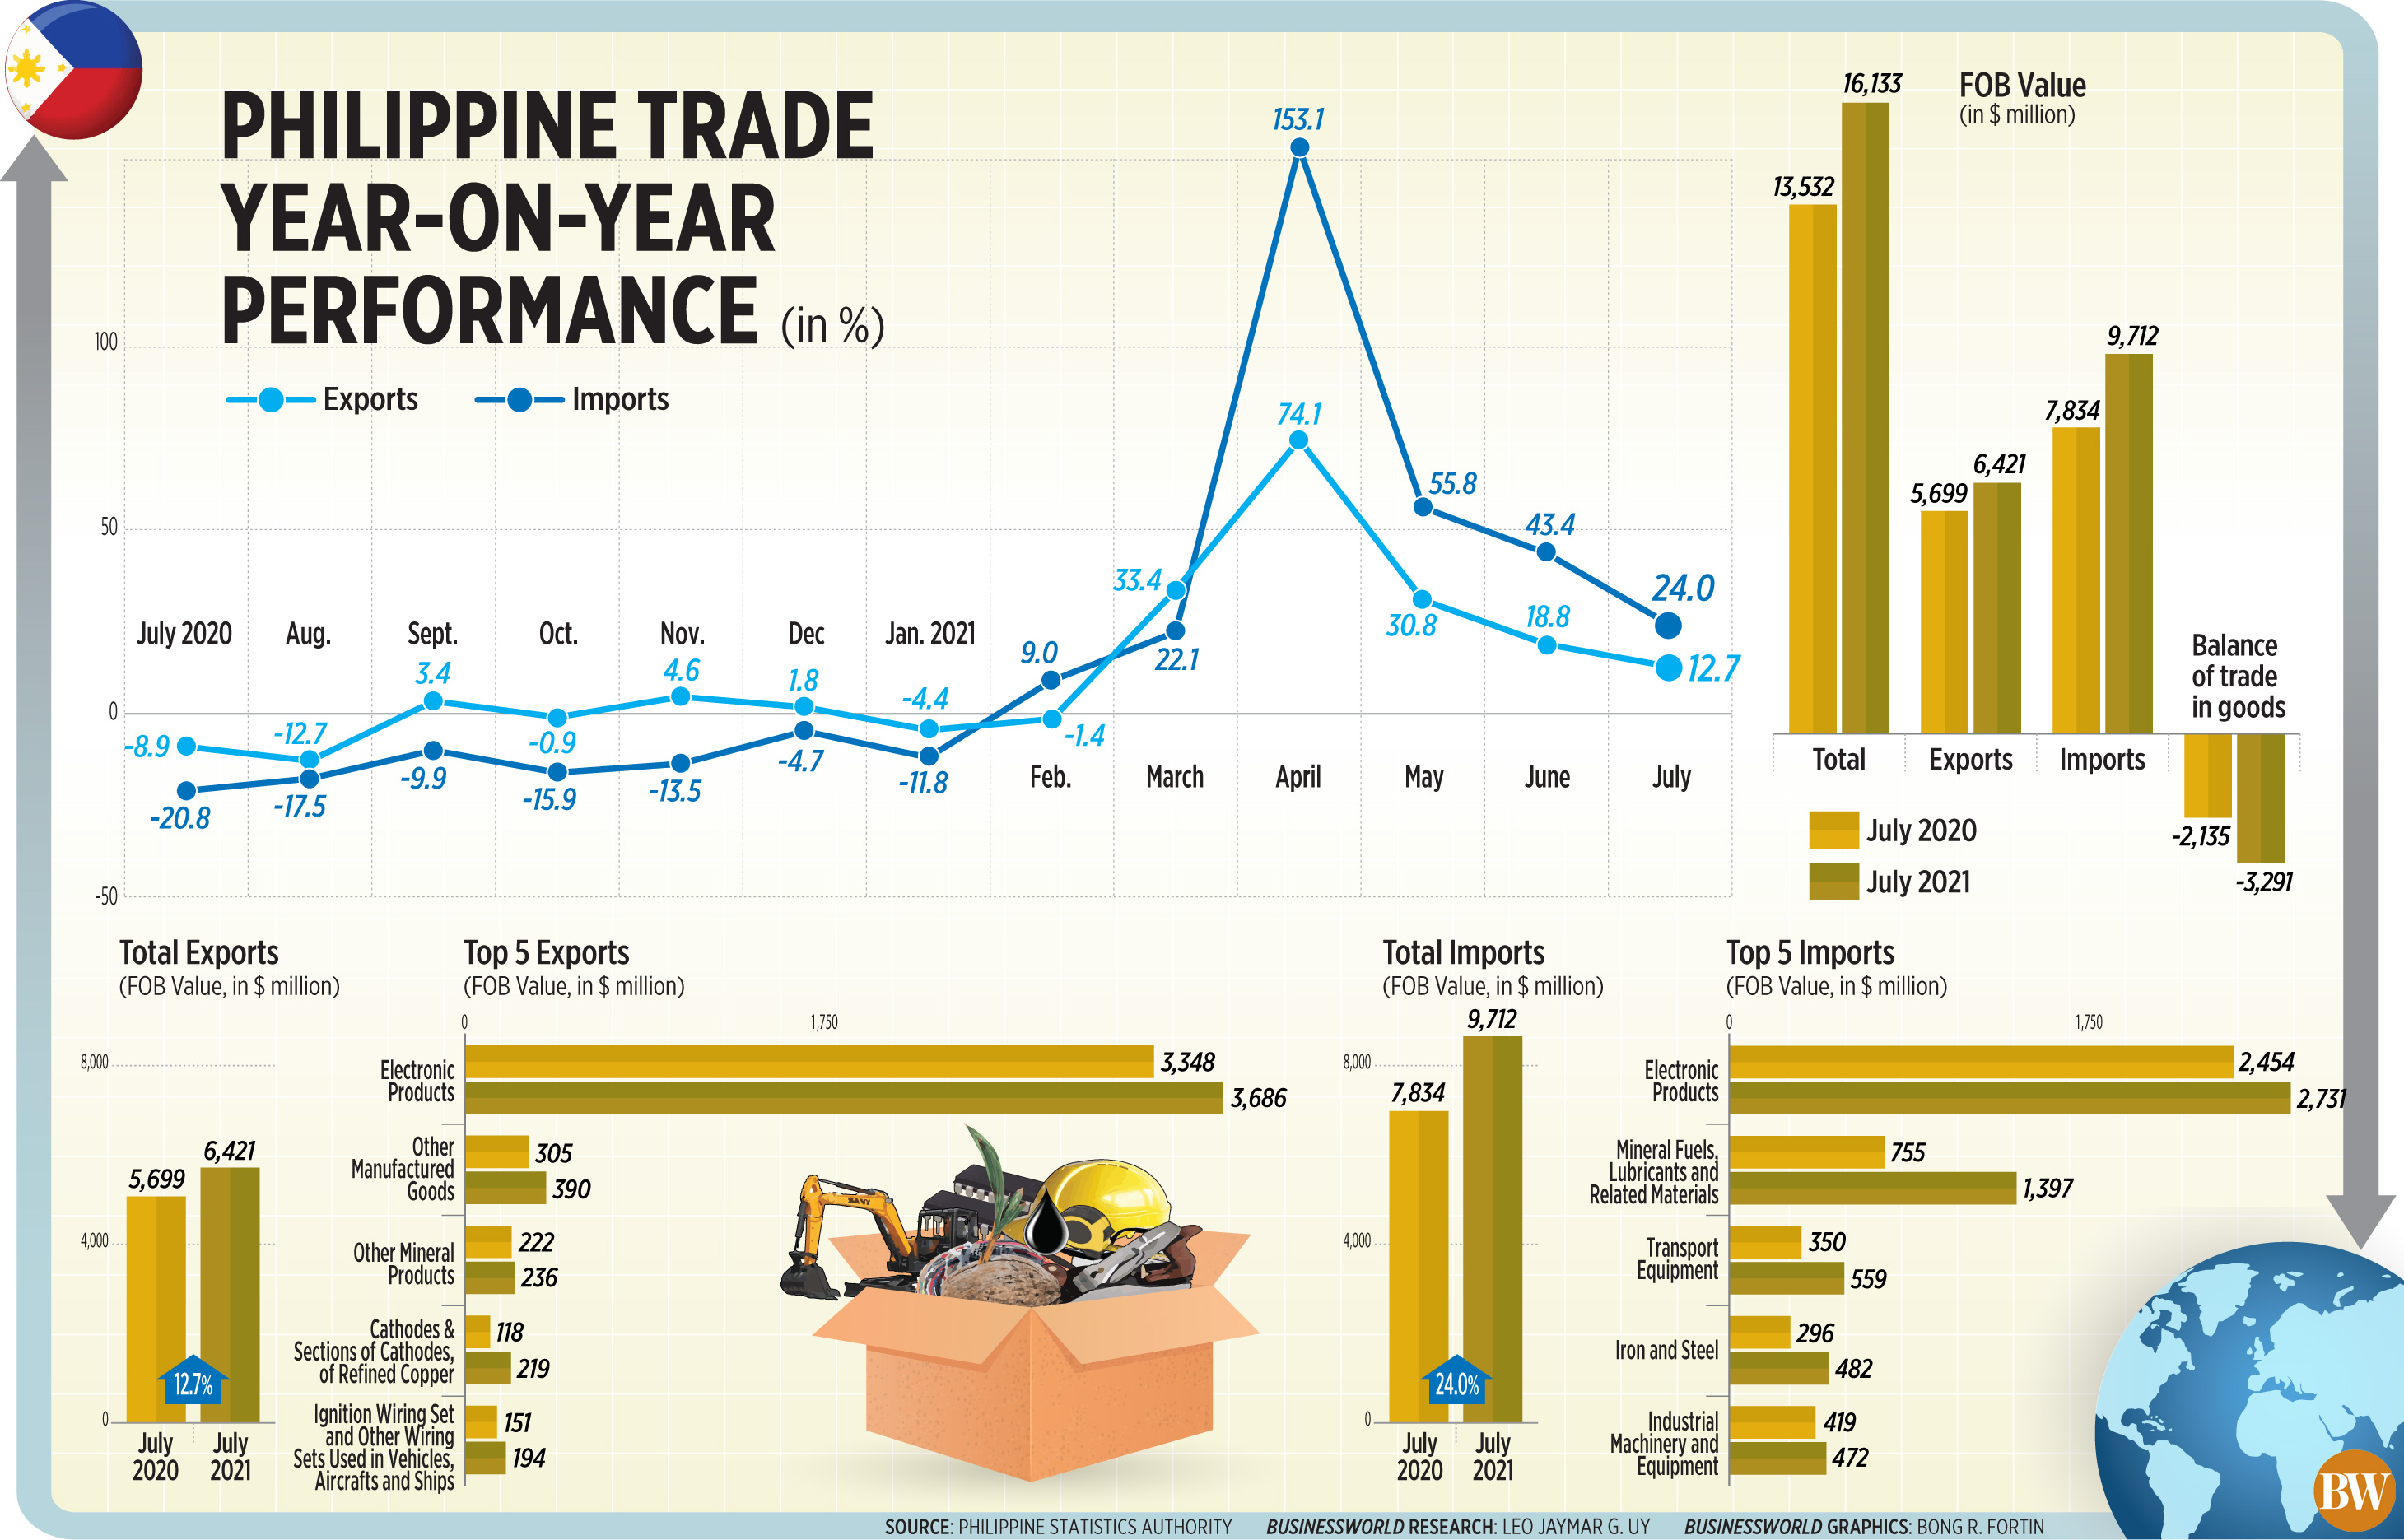 Philippine trade year-on-year performance (July 2021)